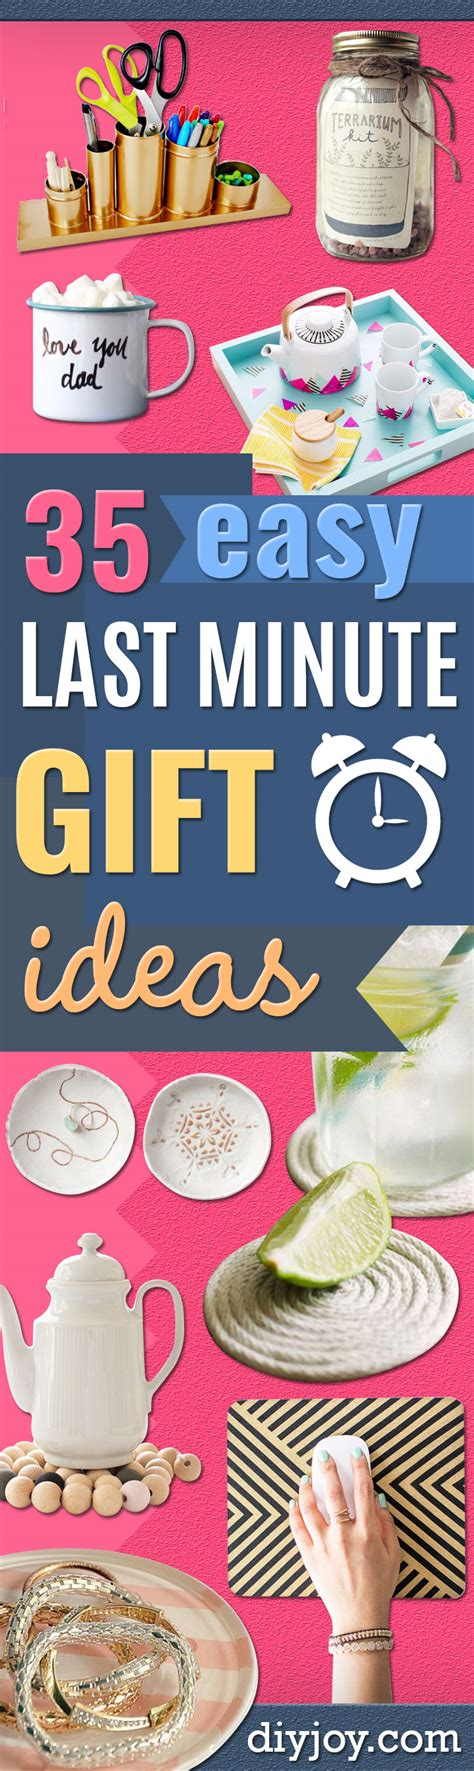 last minute gift ideas 35 awesome last minute diy gift ideas diy